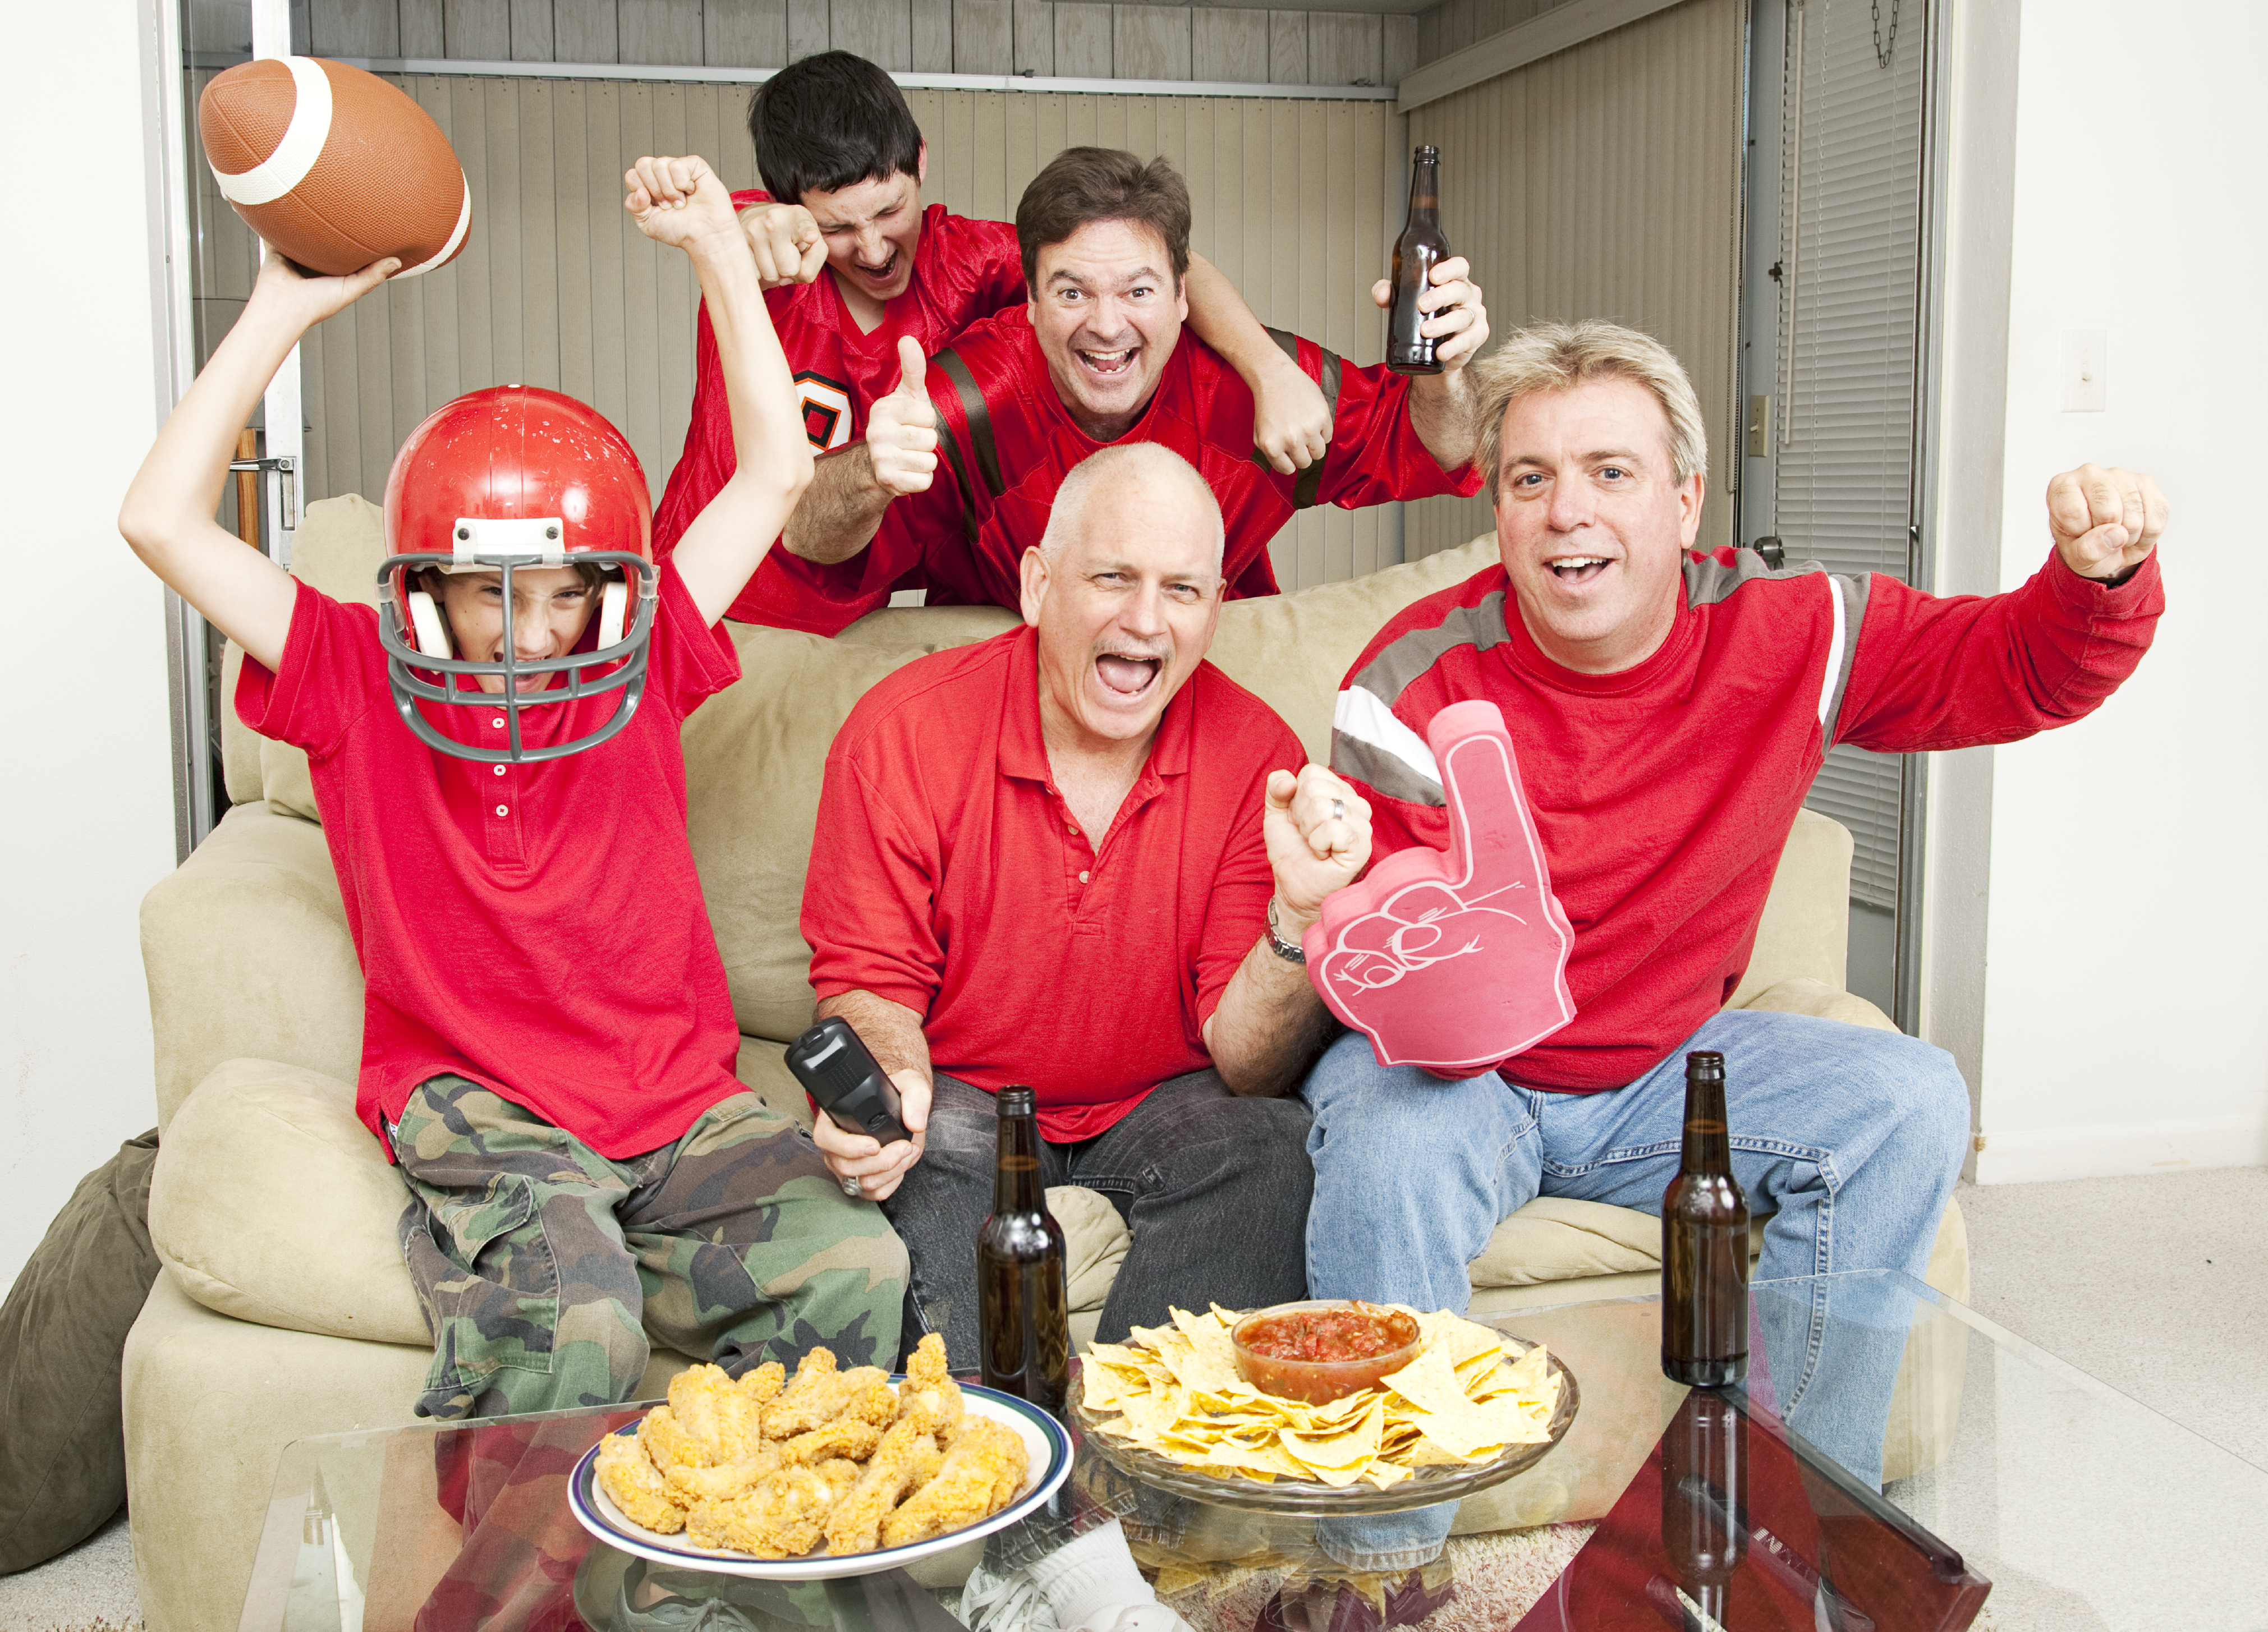 How To Throw a Killer Super Bowl Party